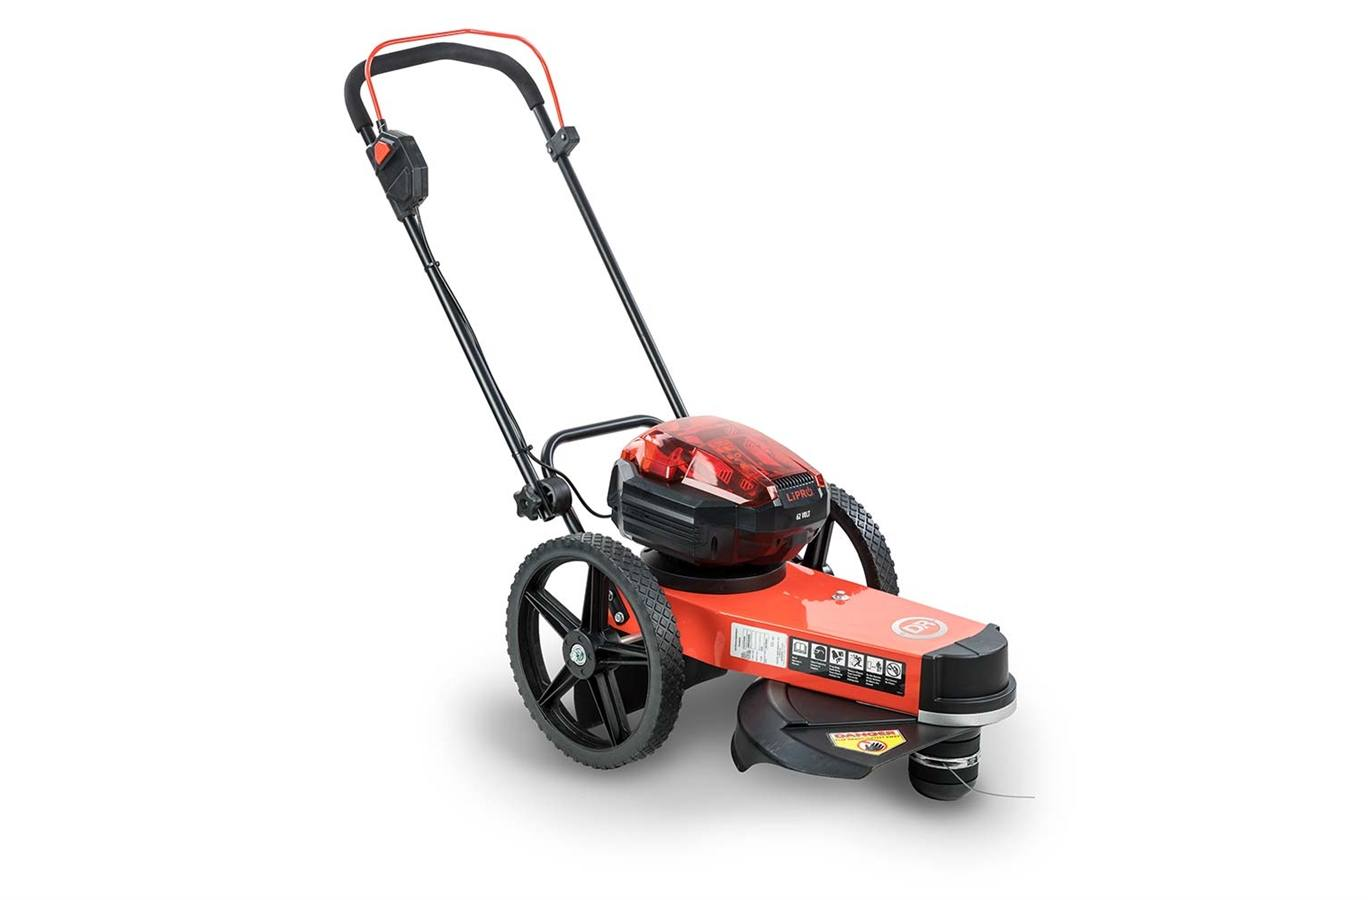 524340 DR Trimmer/Mower w/2 Batteries